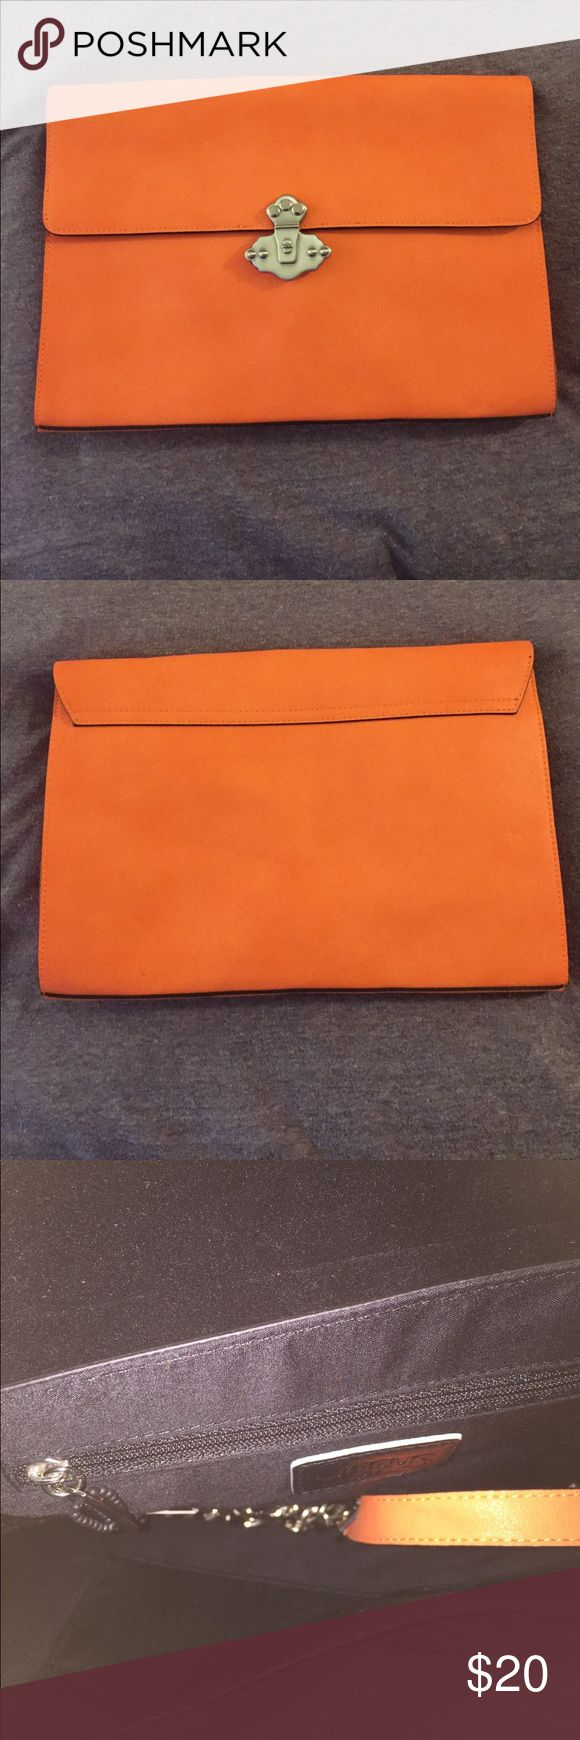 Neon orange clutch Clutch neon orange new never used Circus by Sam Edelman Bags Clutches & Wristlets